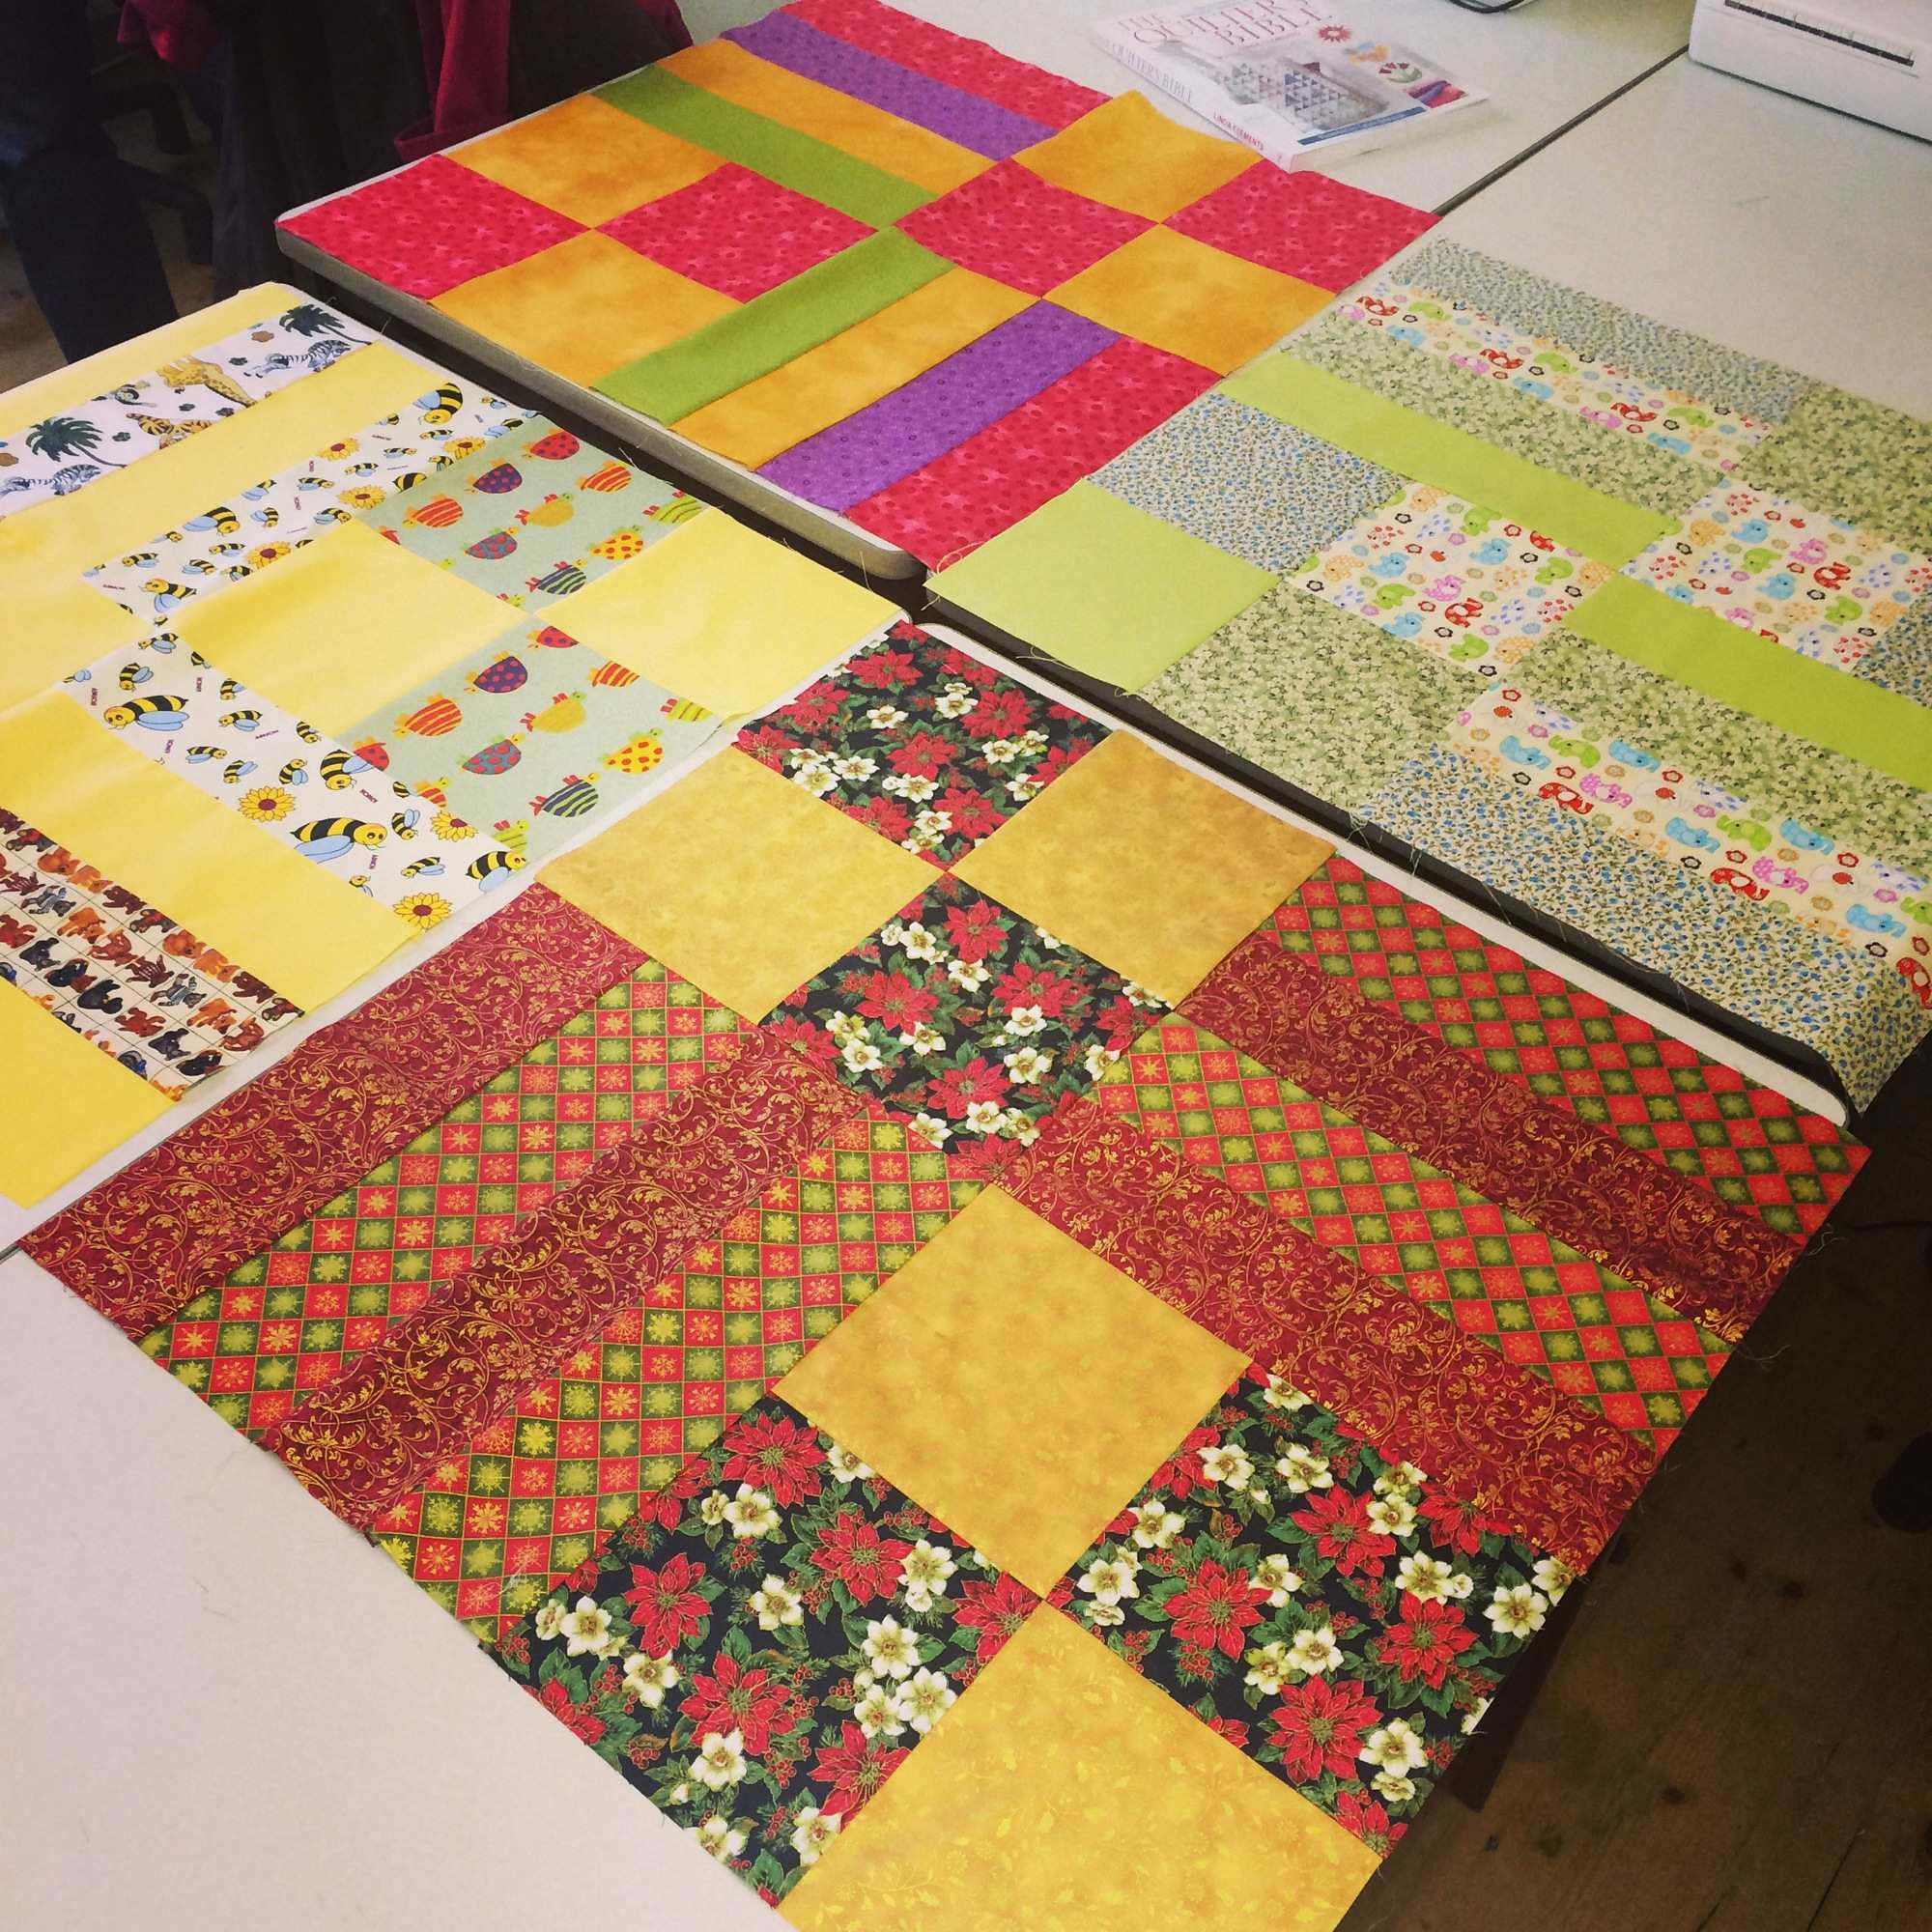 Patchwork Quilting Beginners Classes: Exeter Sewing: Patchwork & Quilting For Beginners